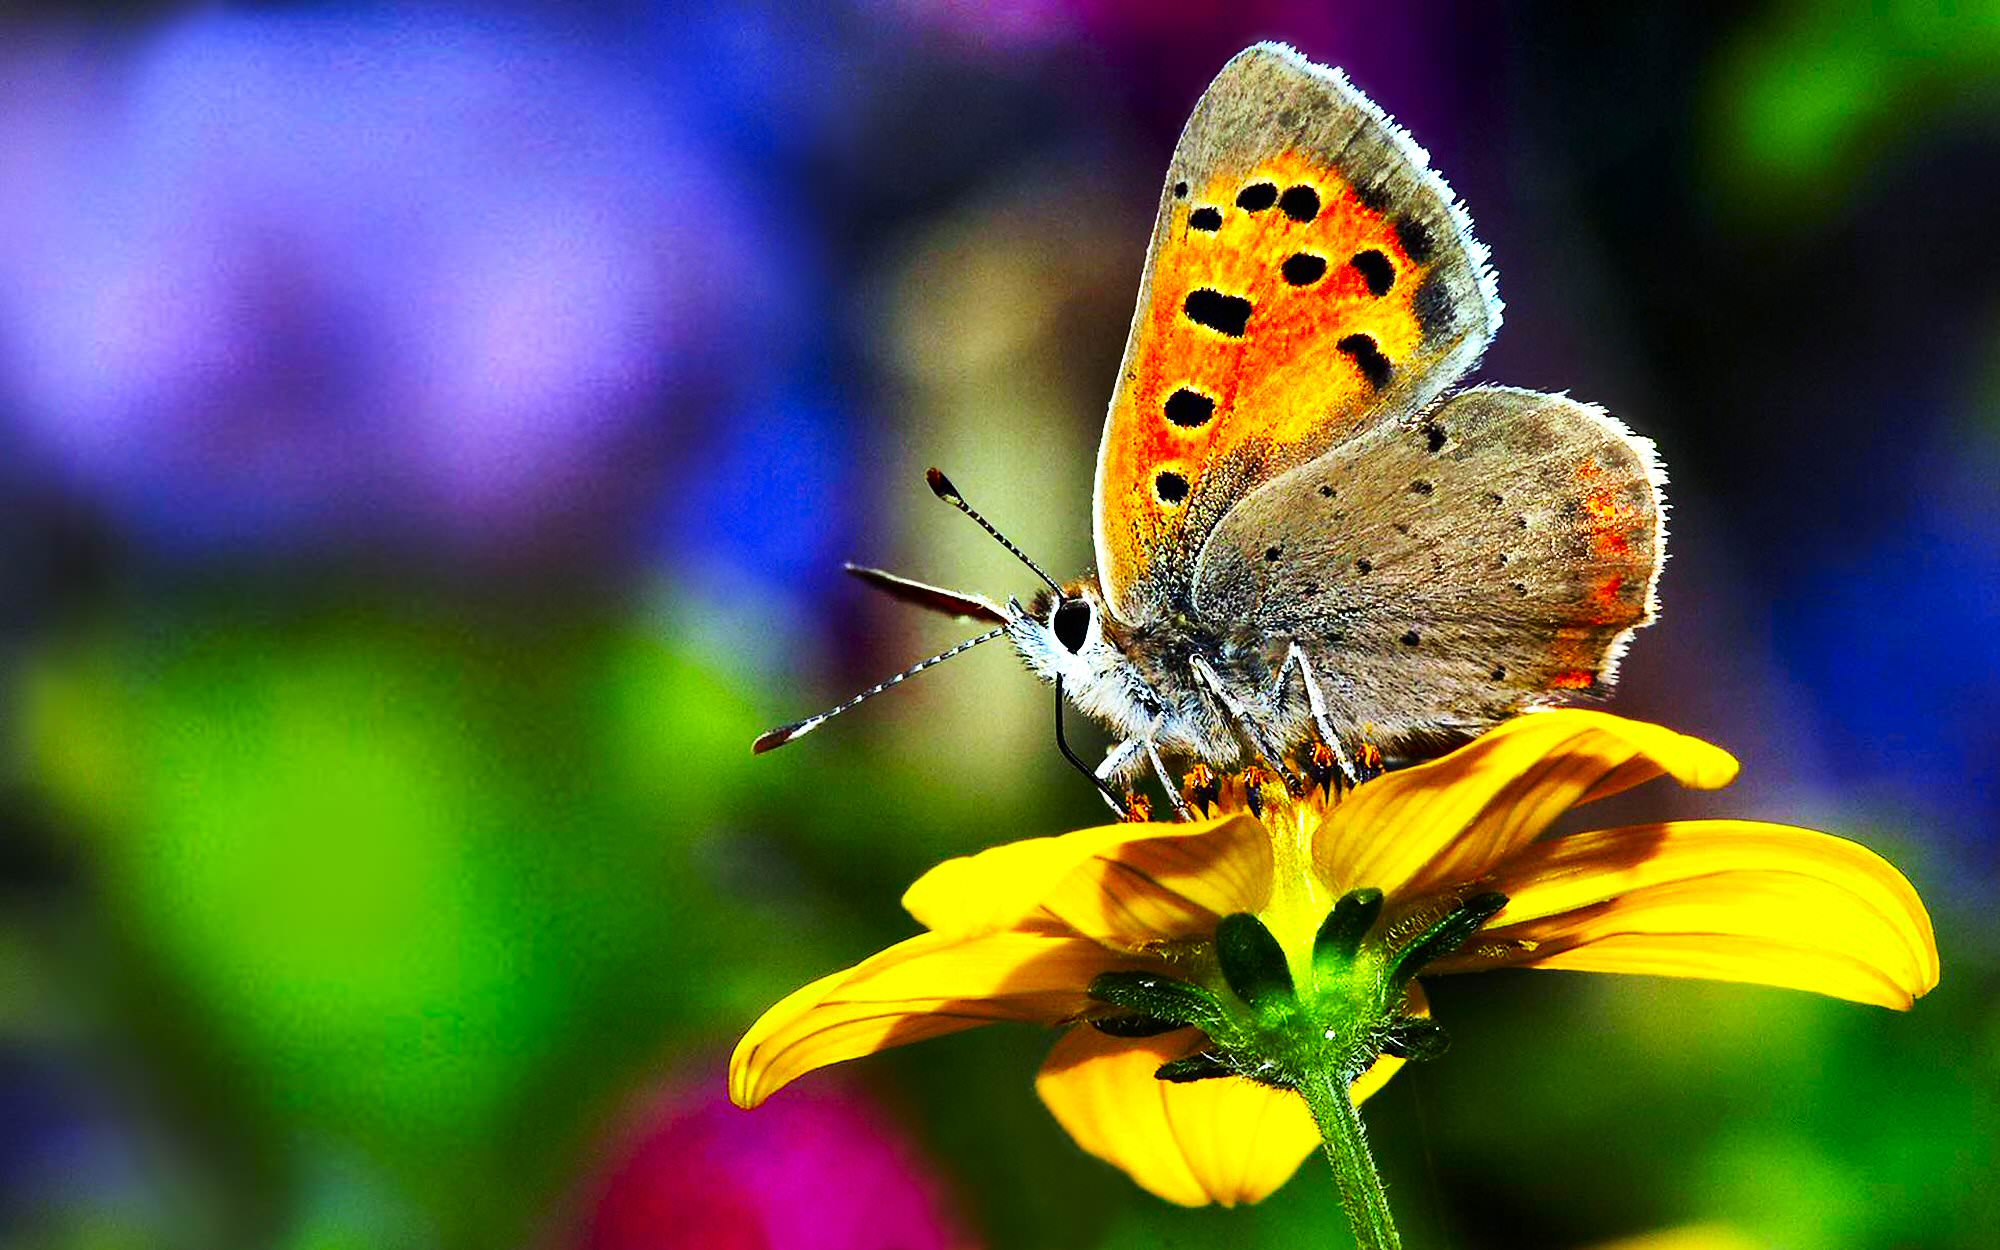 butterfly on flower background